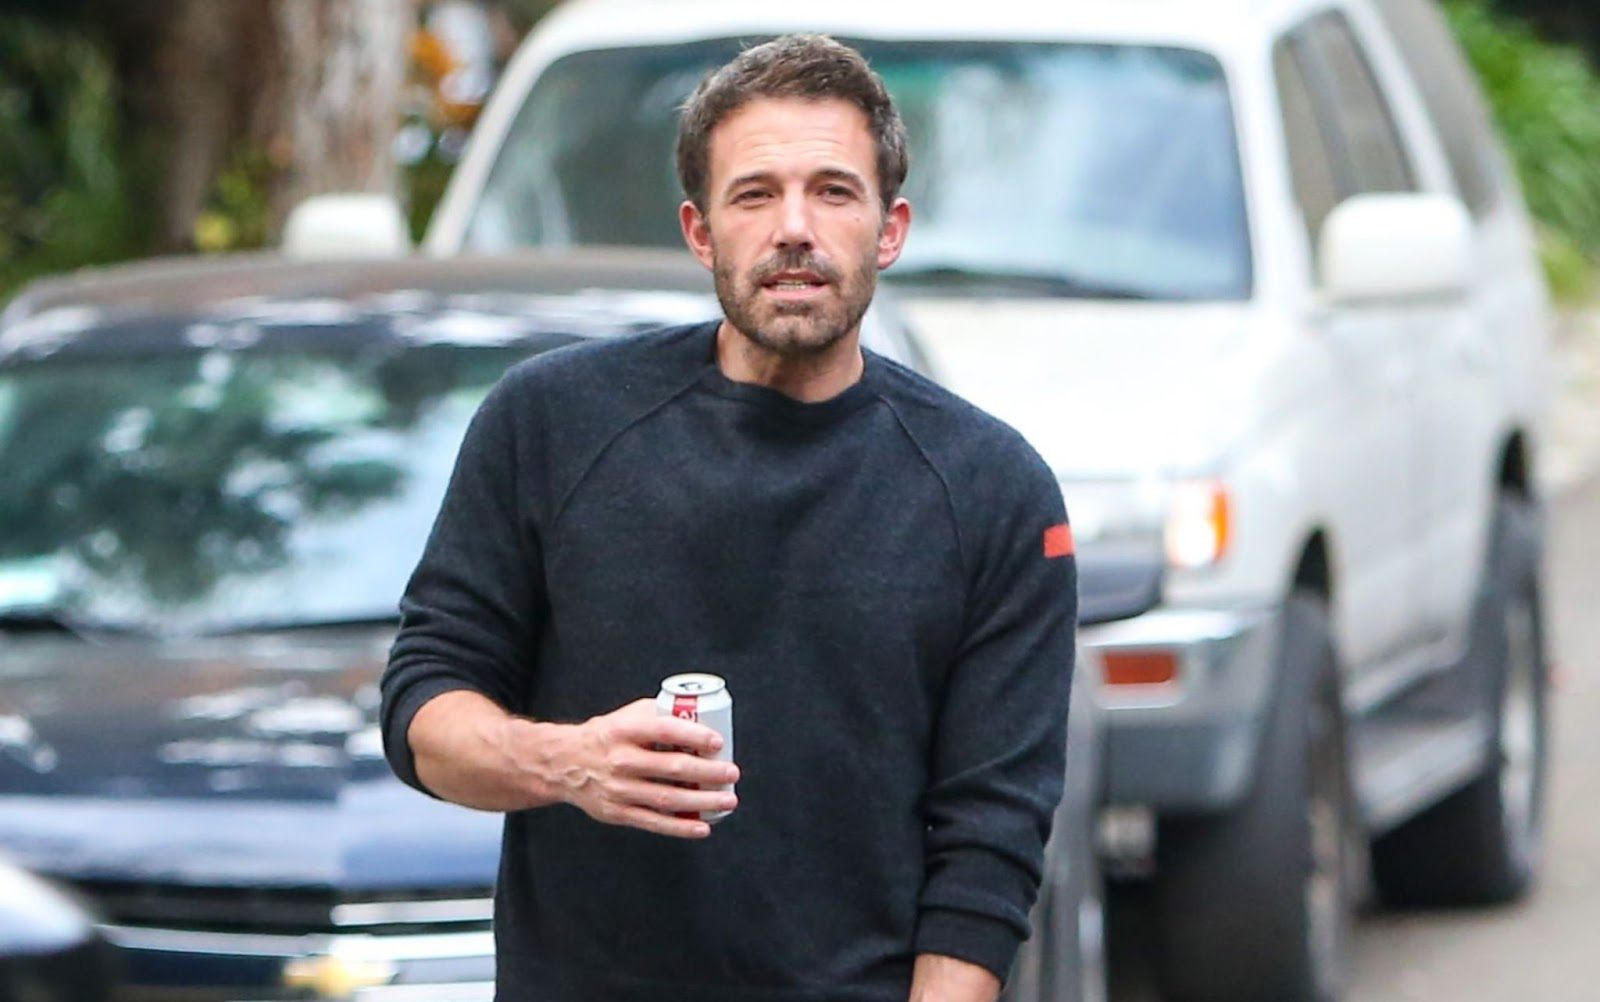 Ben Affleck's Career And How He Reinvented Himself To Make It In Hollywood Twice